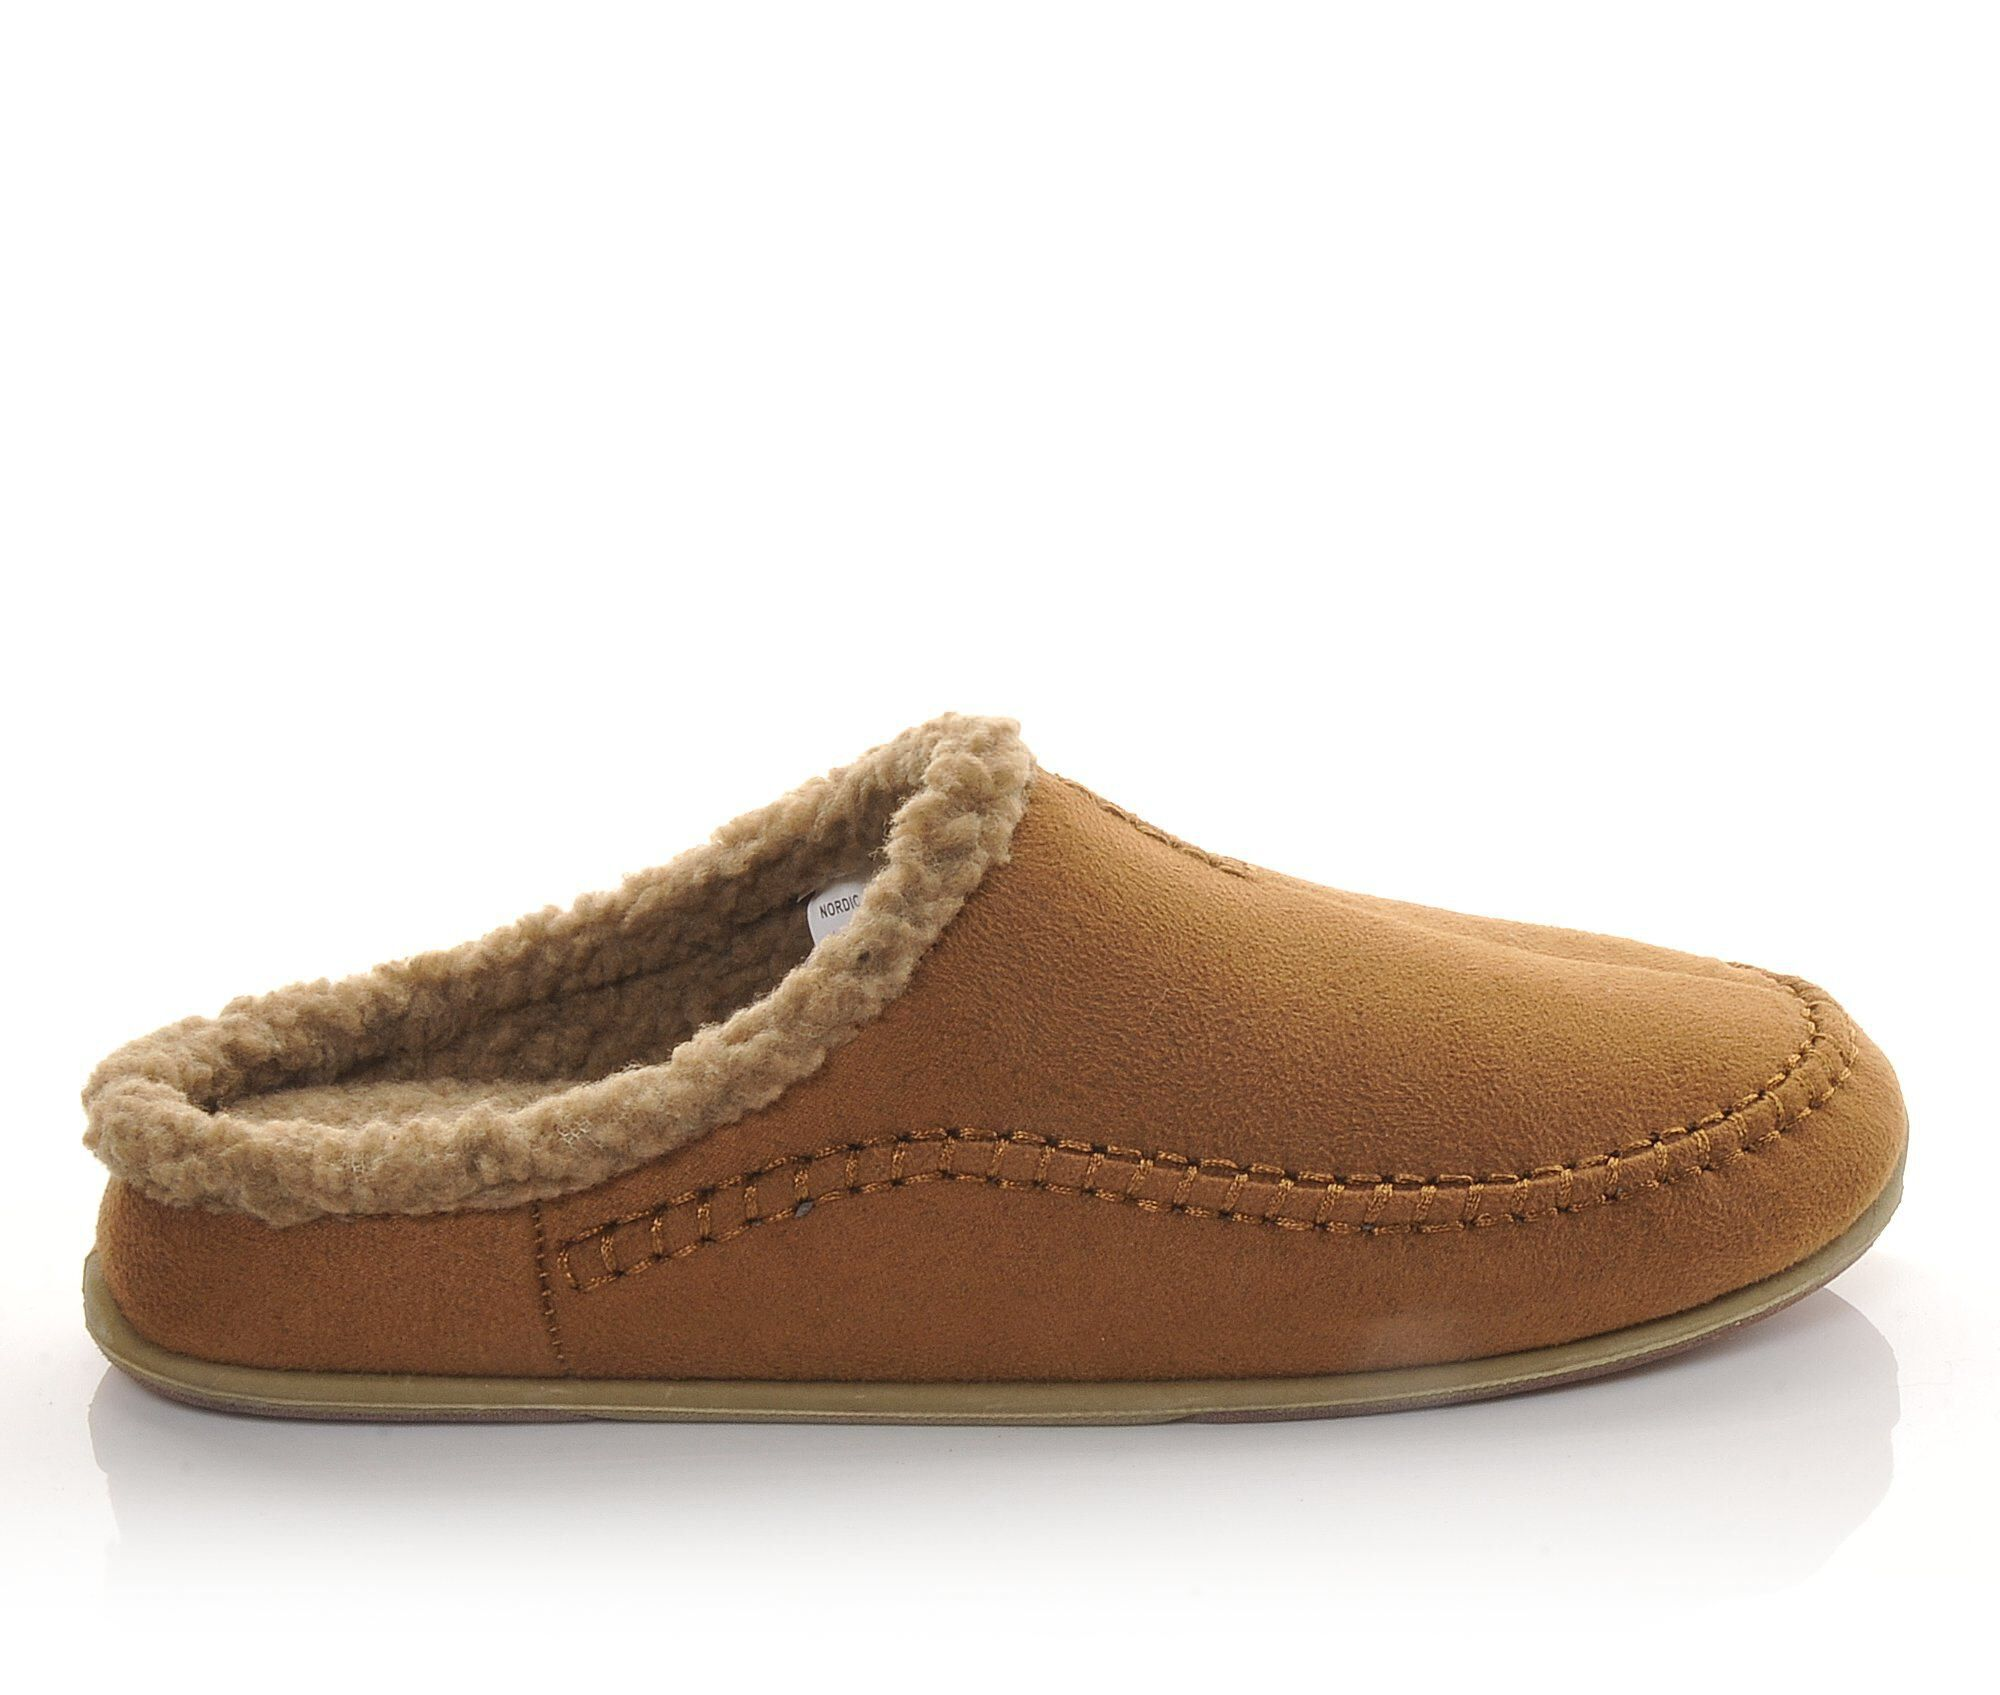 quality guaranteed Deer Stags Nordic Slippers Chestnut